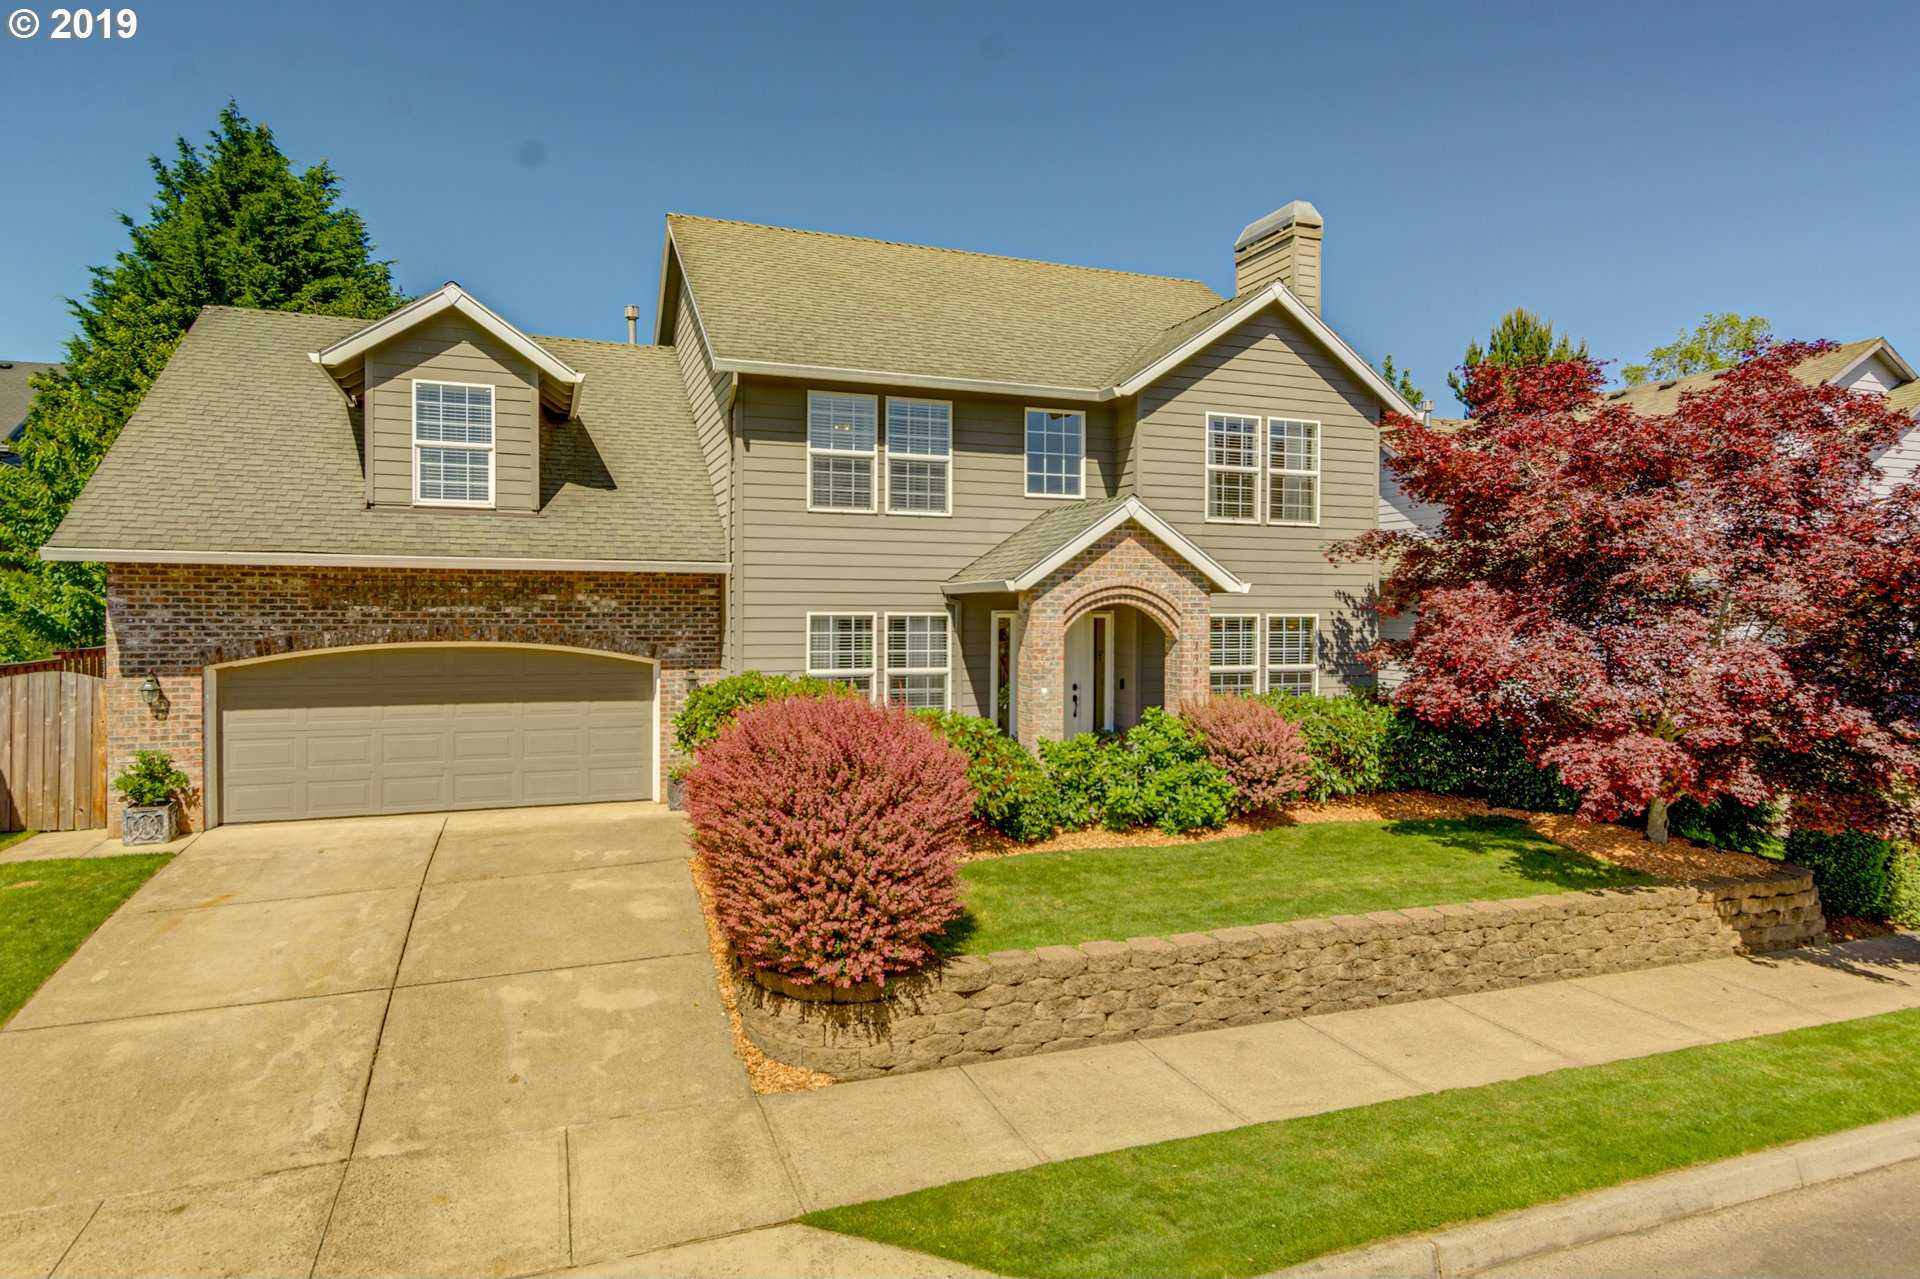 $439,950 - 3Br/3Ba -  for Sale in Clackamas